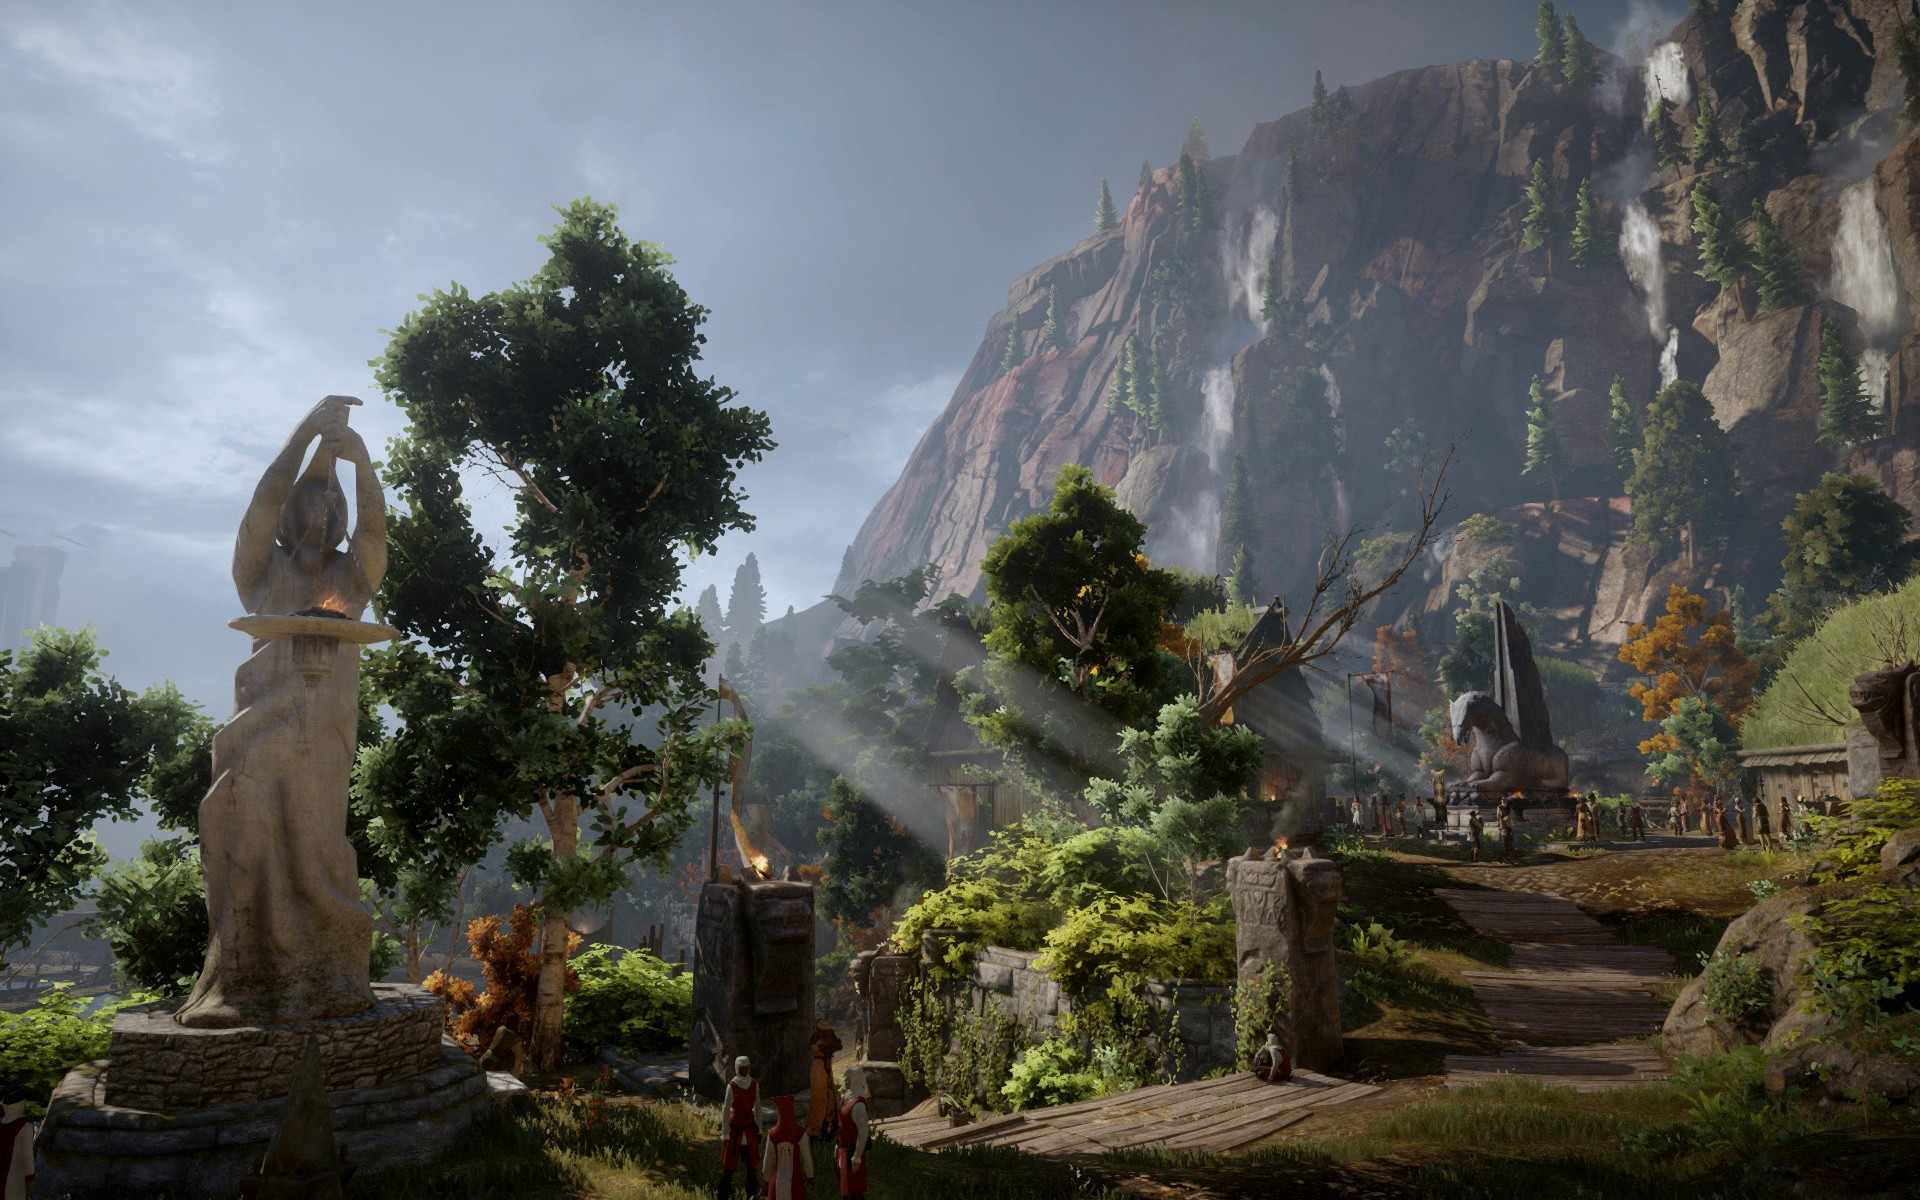 1920x1200 Animated Desktop Wallpaper of Inquisition at Dragon Age: Inquisition Nexus  - Mods and community